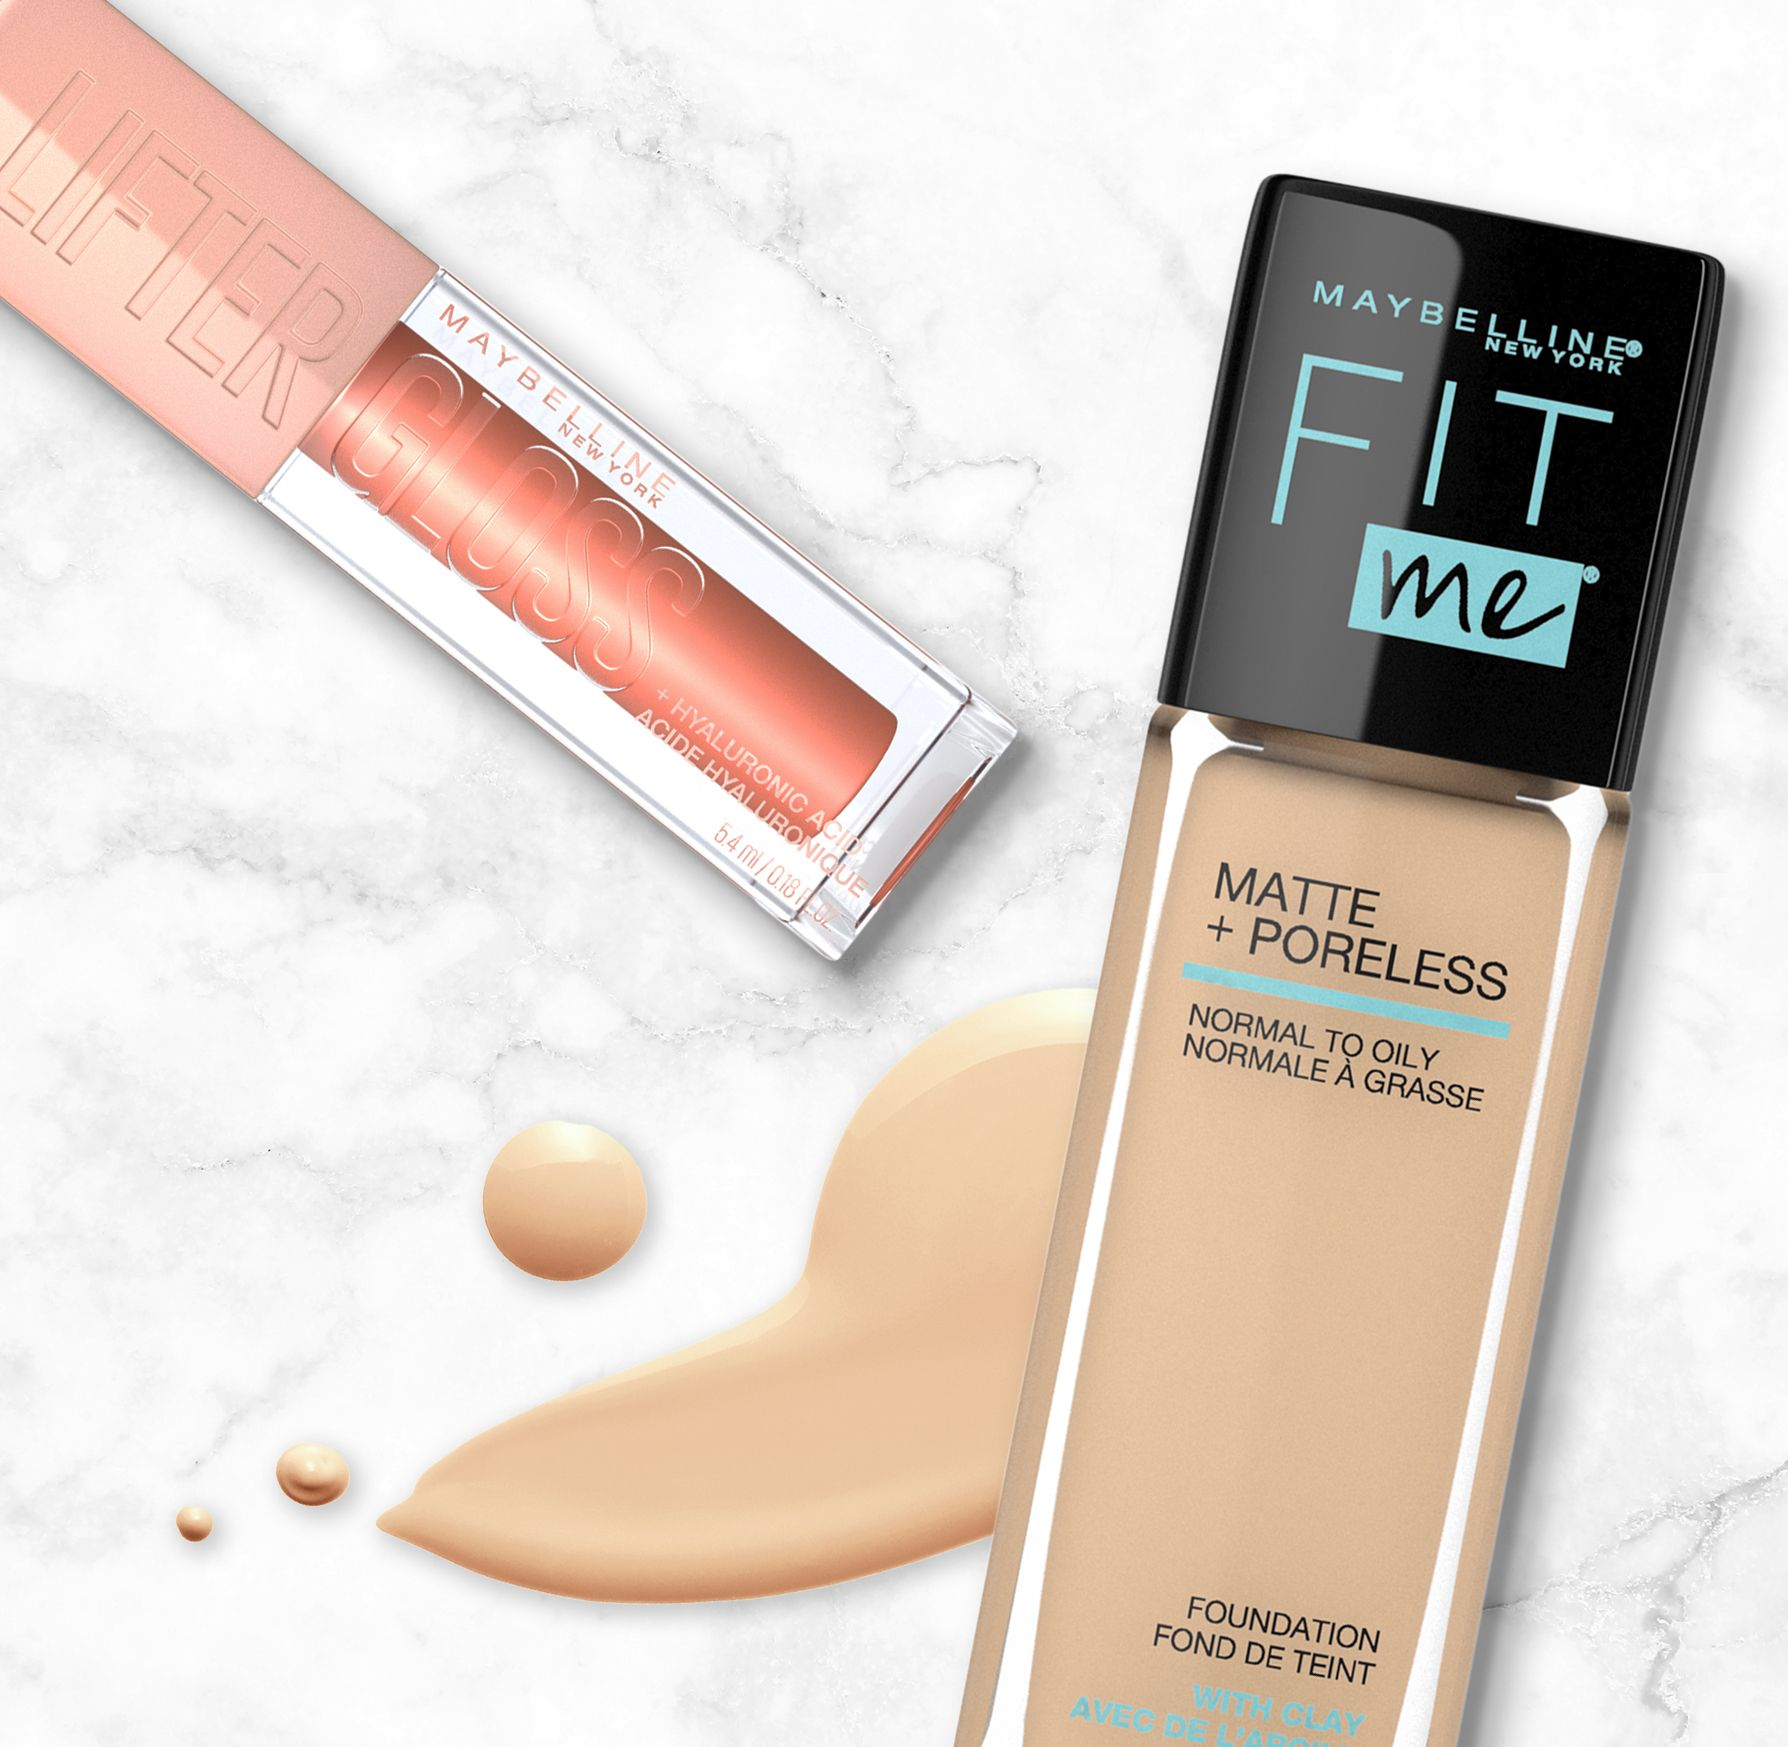 Shop for select Maybelline products.